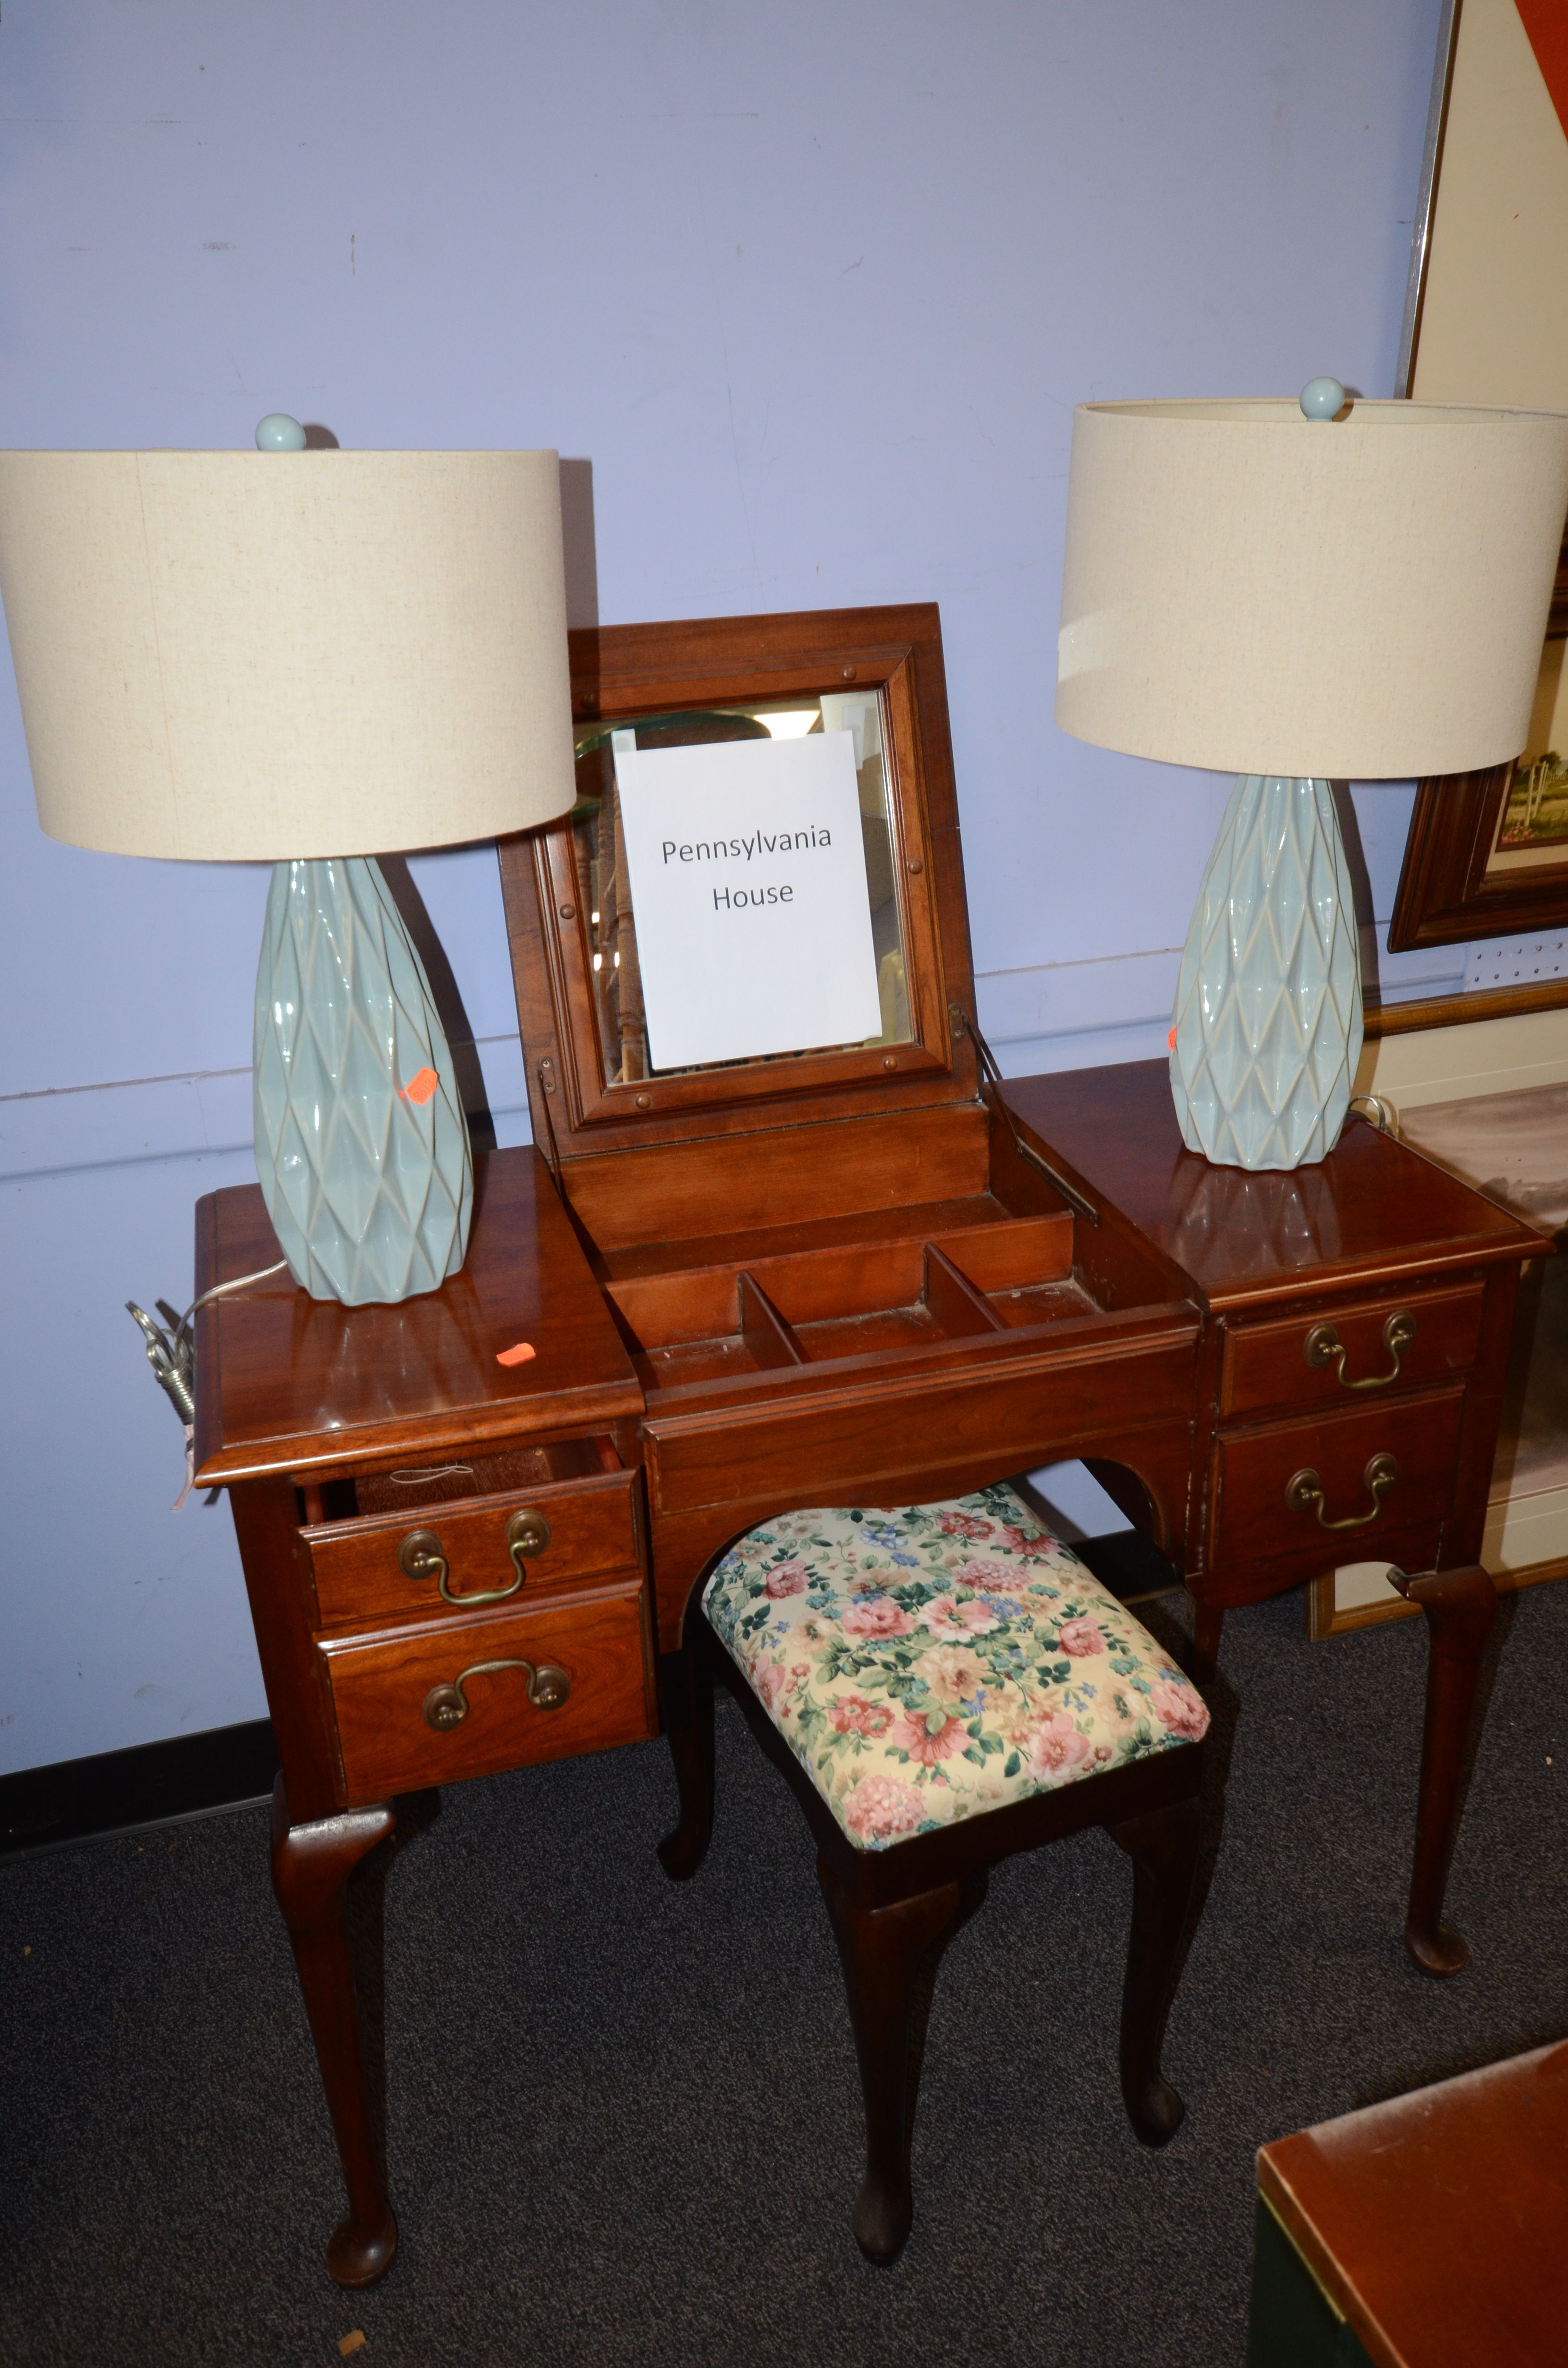 Pennsylvania House Vanity February 6th Quality Furniture Fine China Household Items Asian